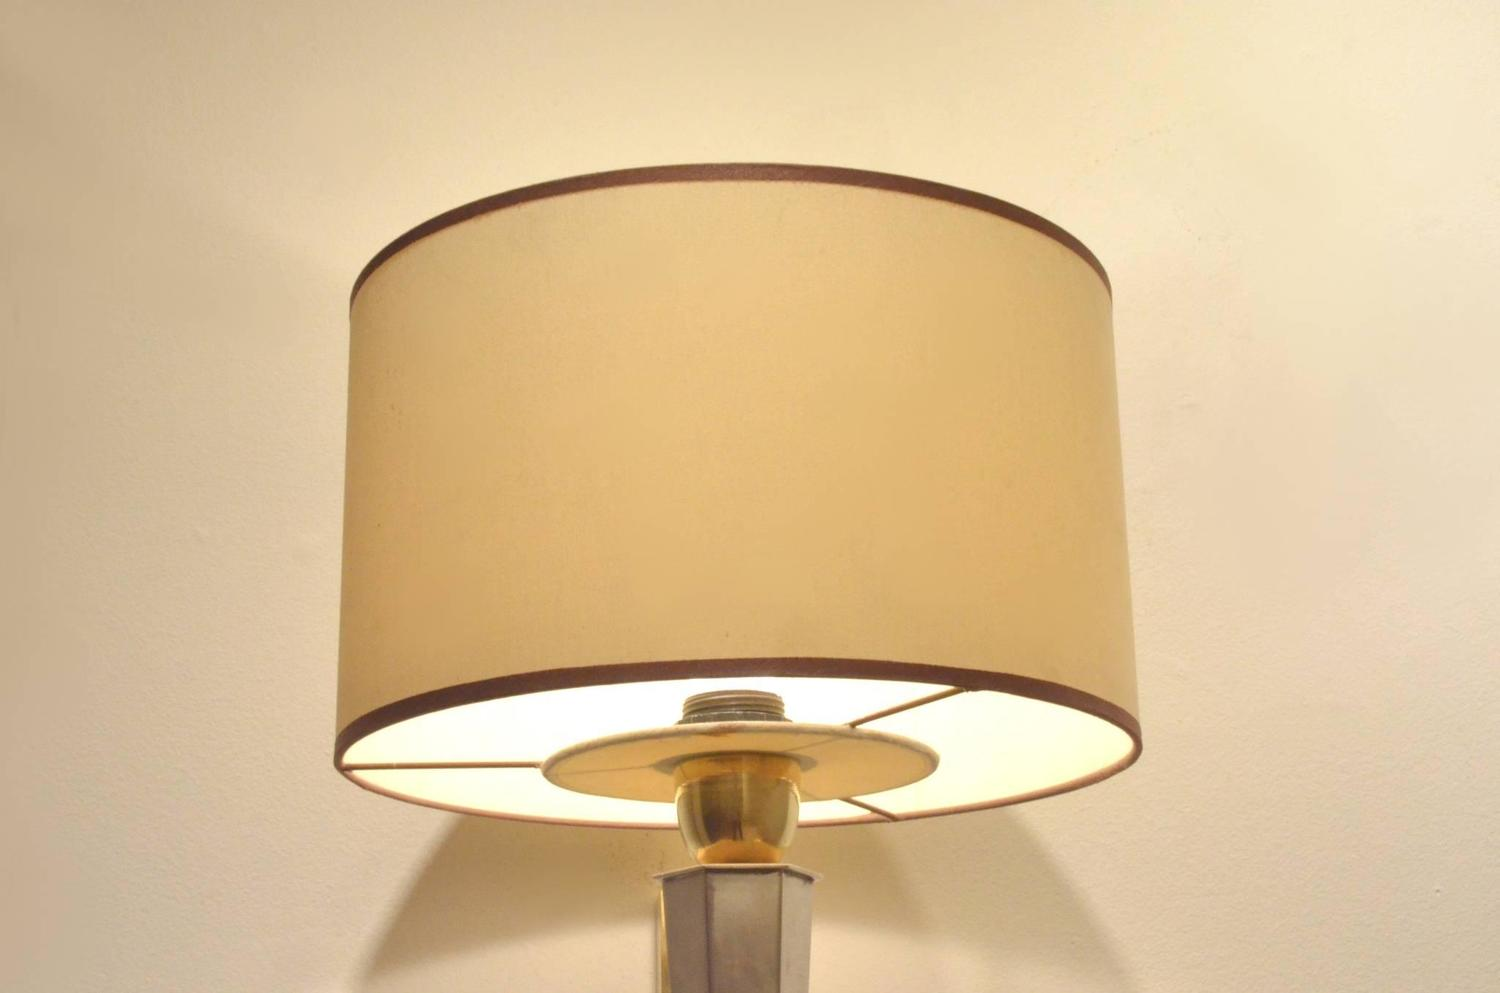 Pair of Mid-Century Maison Jansen Style Bicolored Brass Wall Sconces Lamps For Sale at 1stdibs